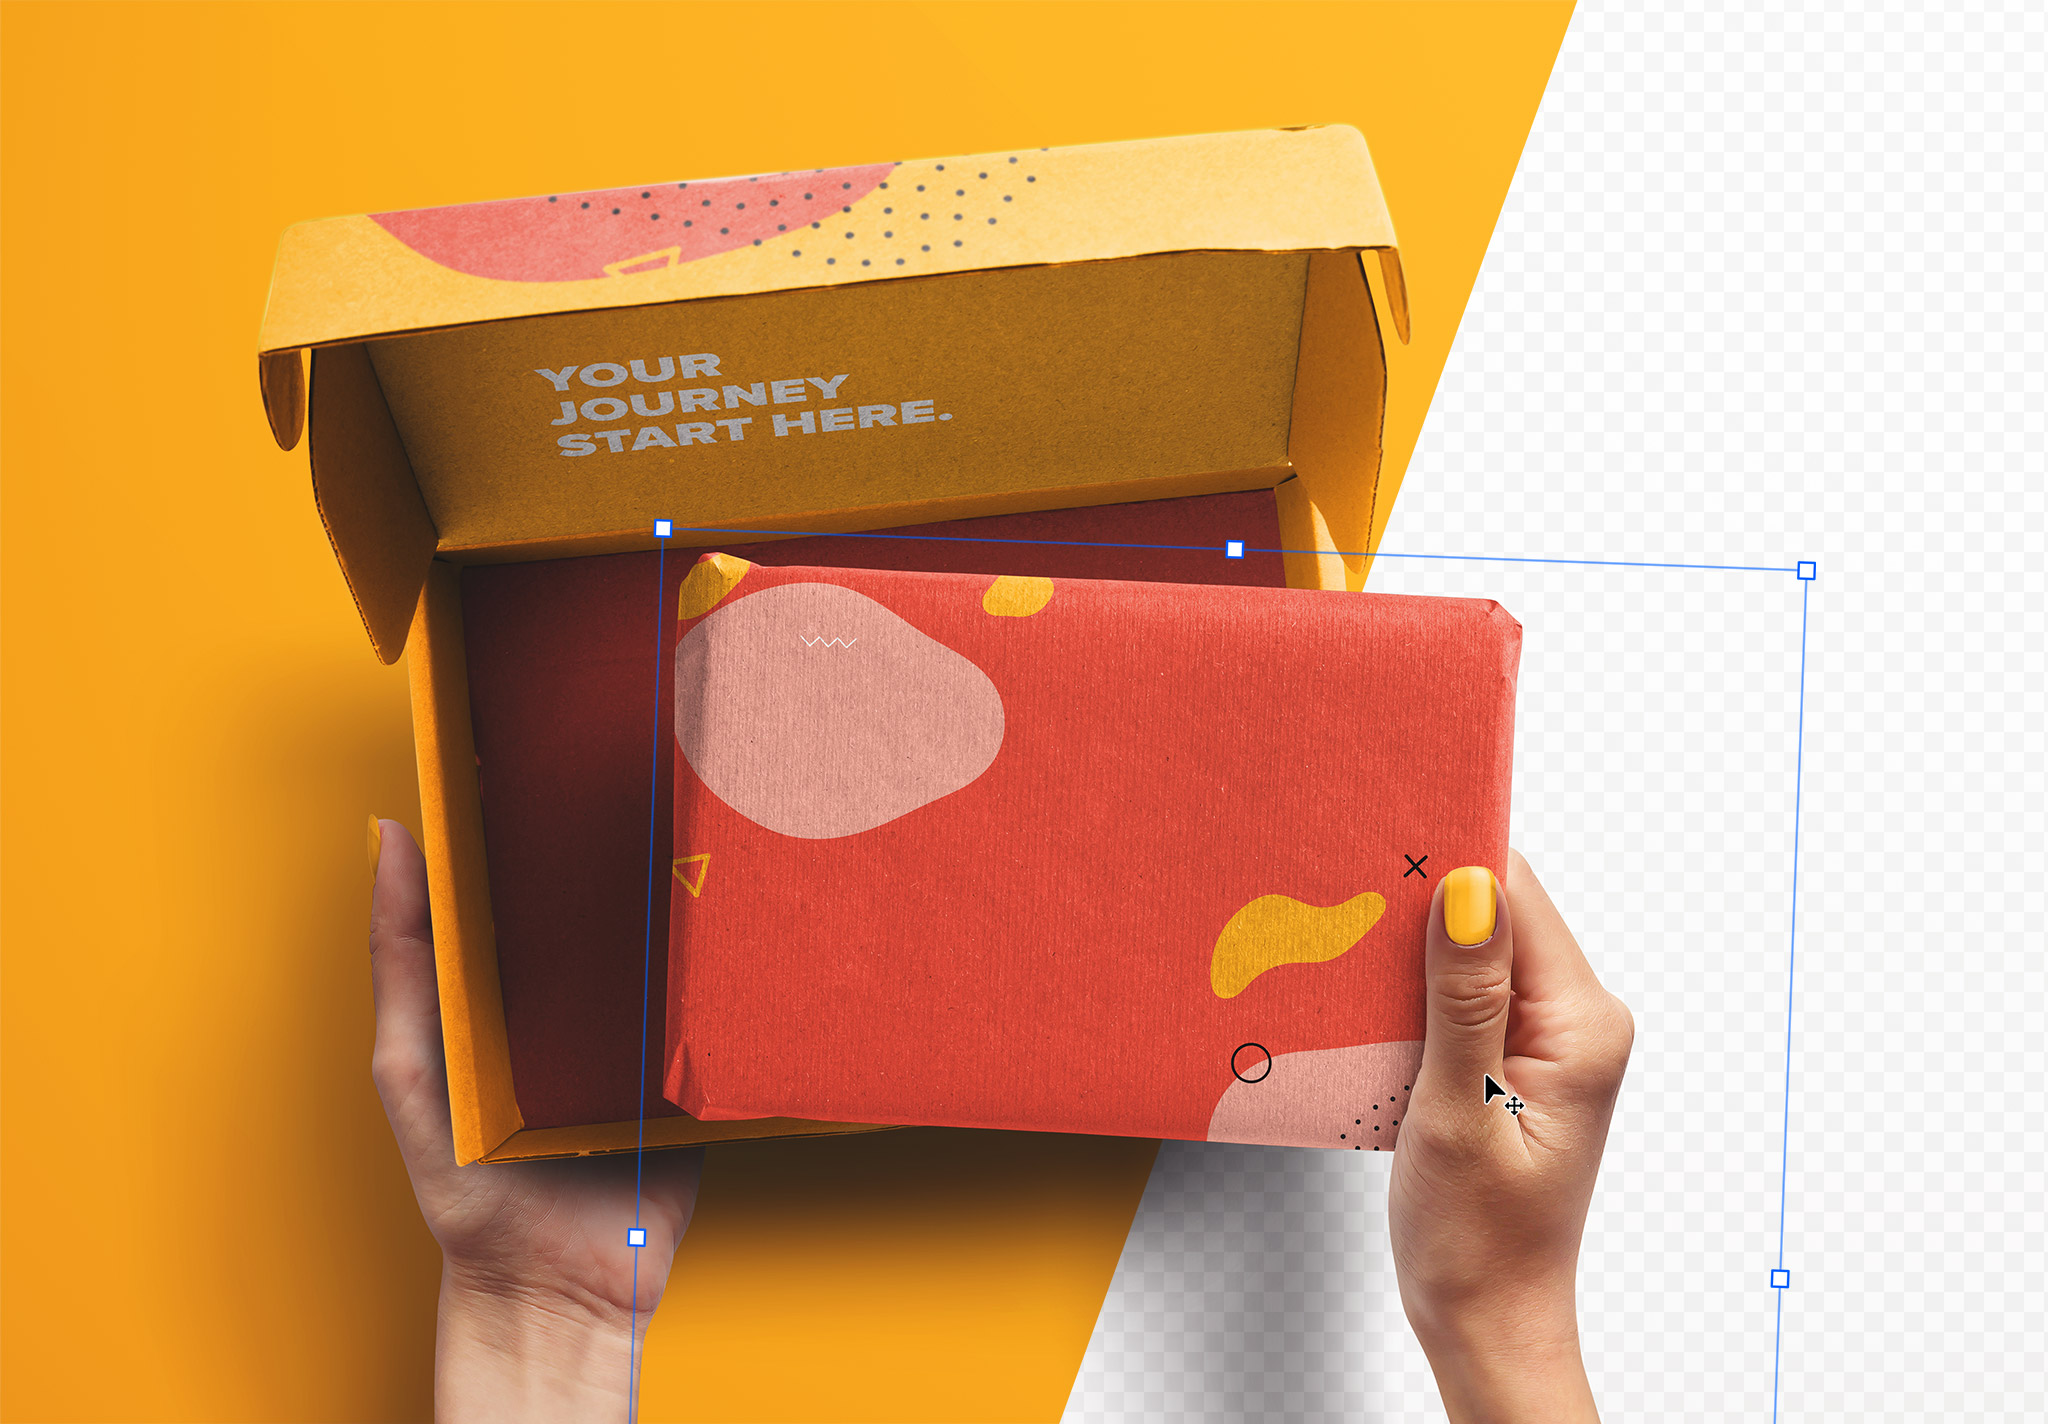 Hands Holding Opened Postal Box and Package Mockup thumbnail 2